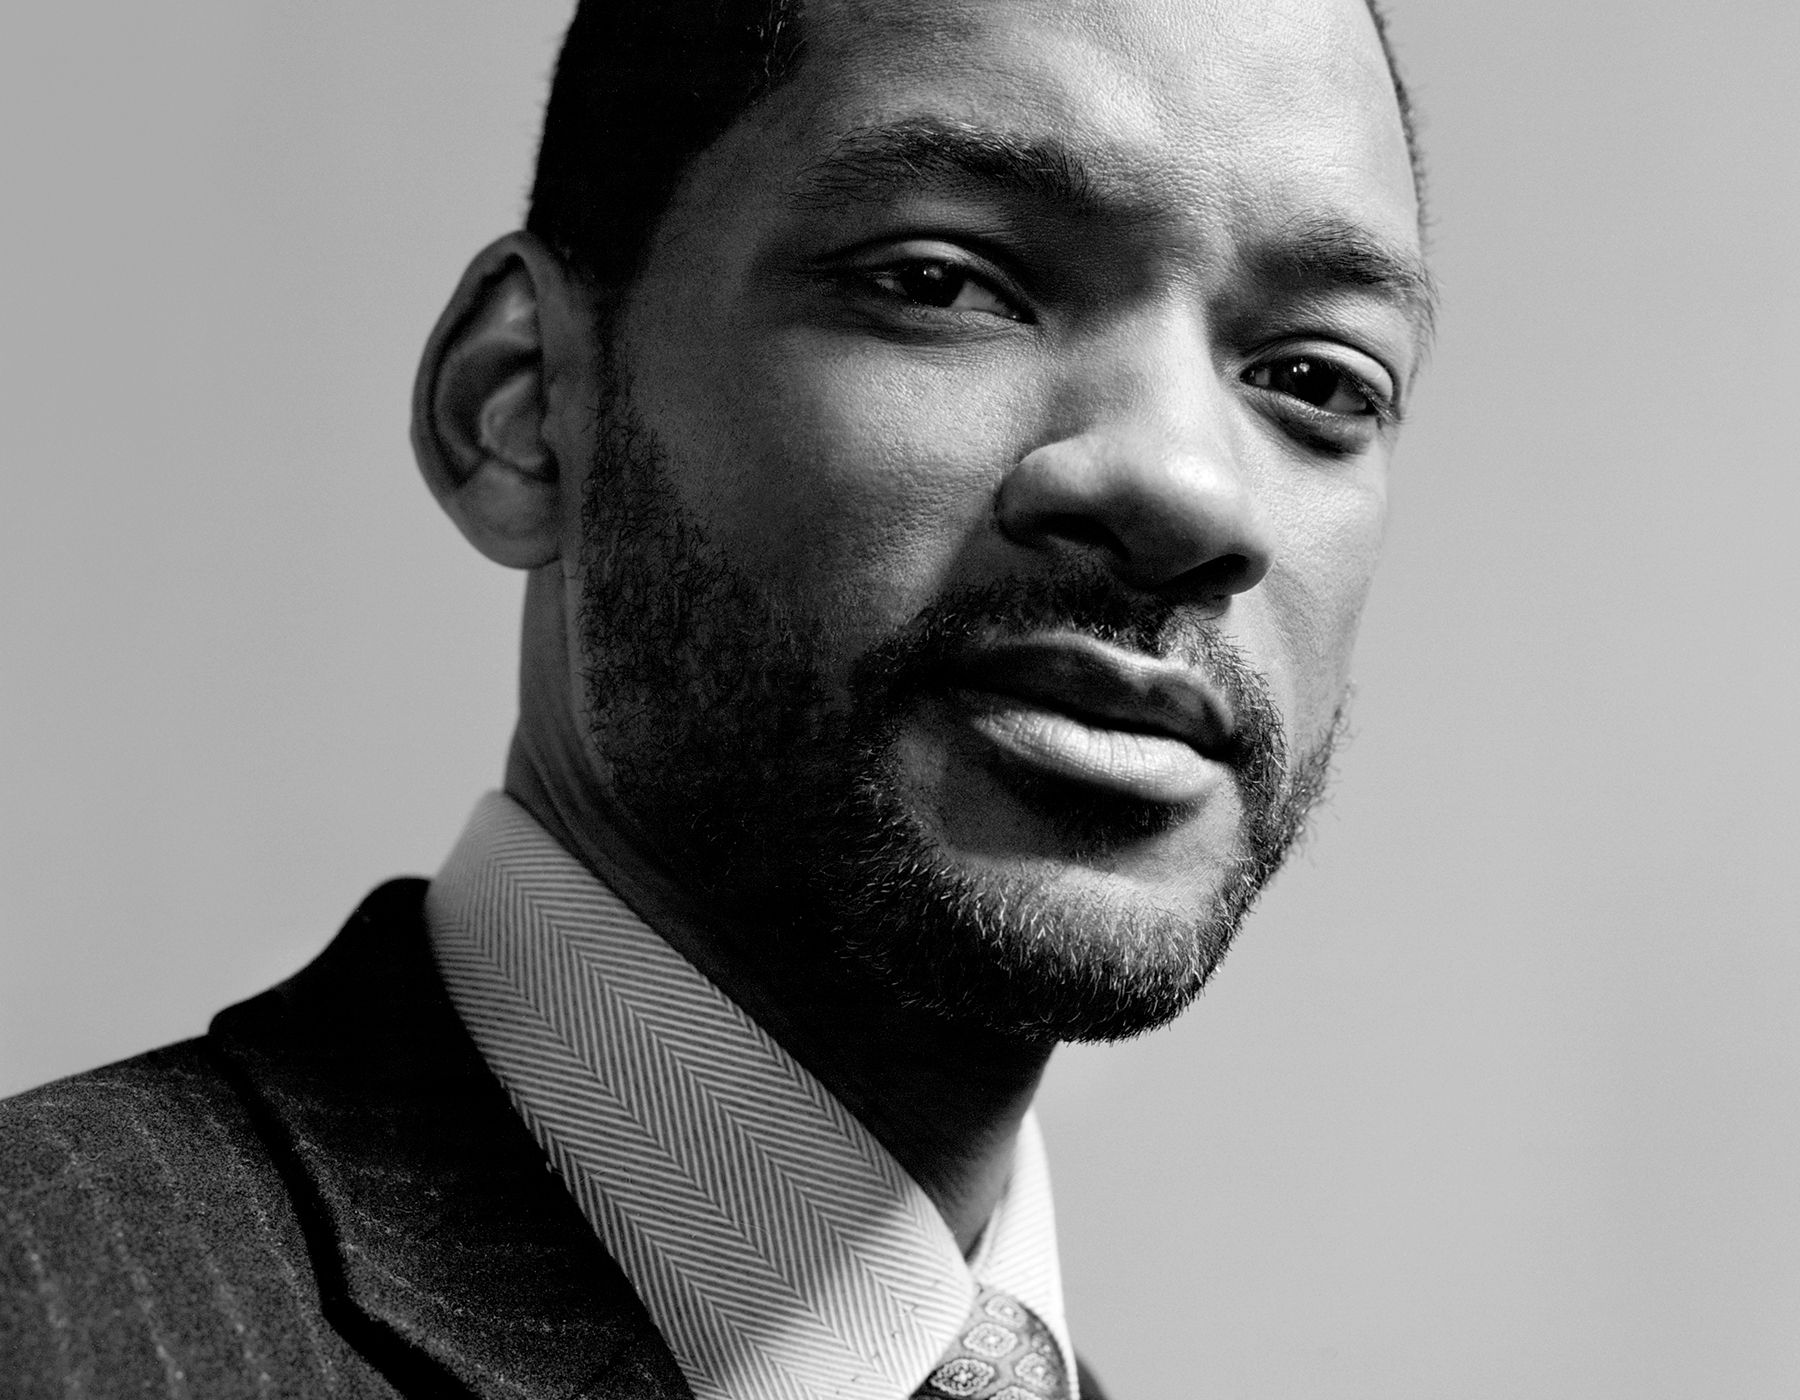 Will Smith photographed by Scott Council